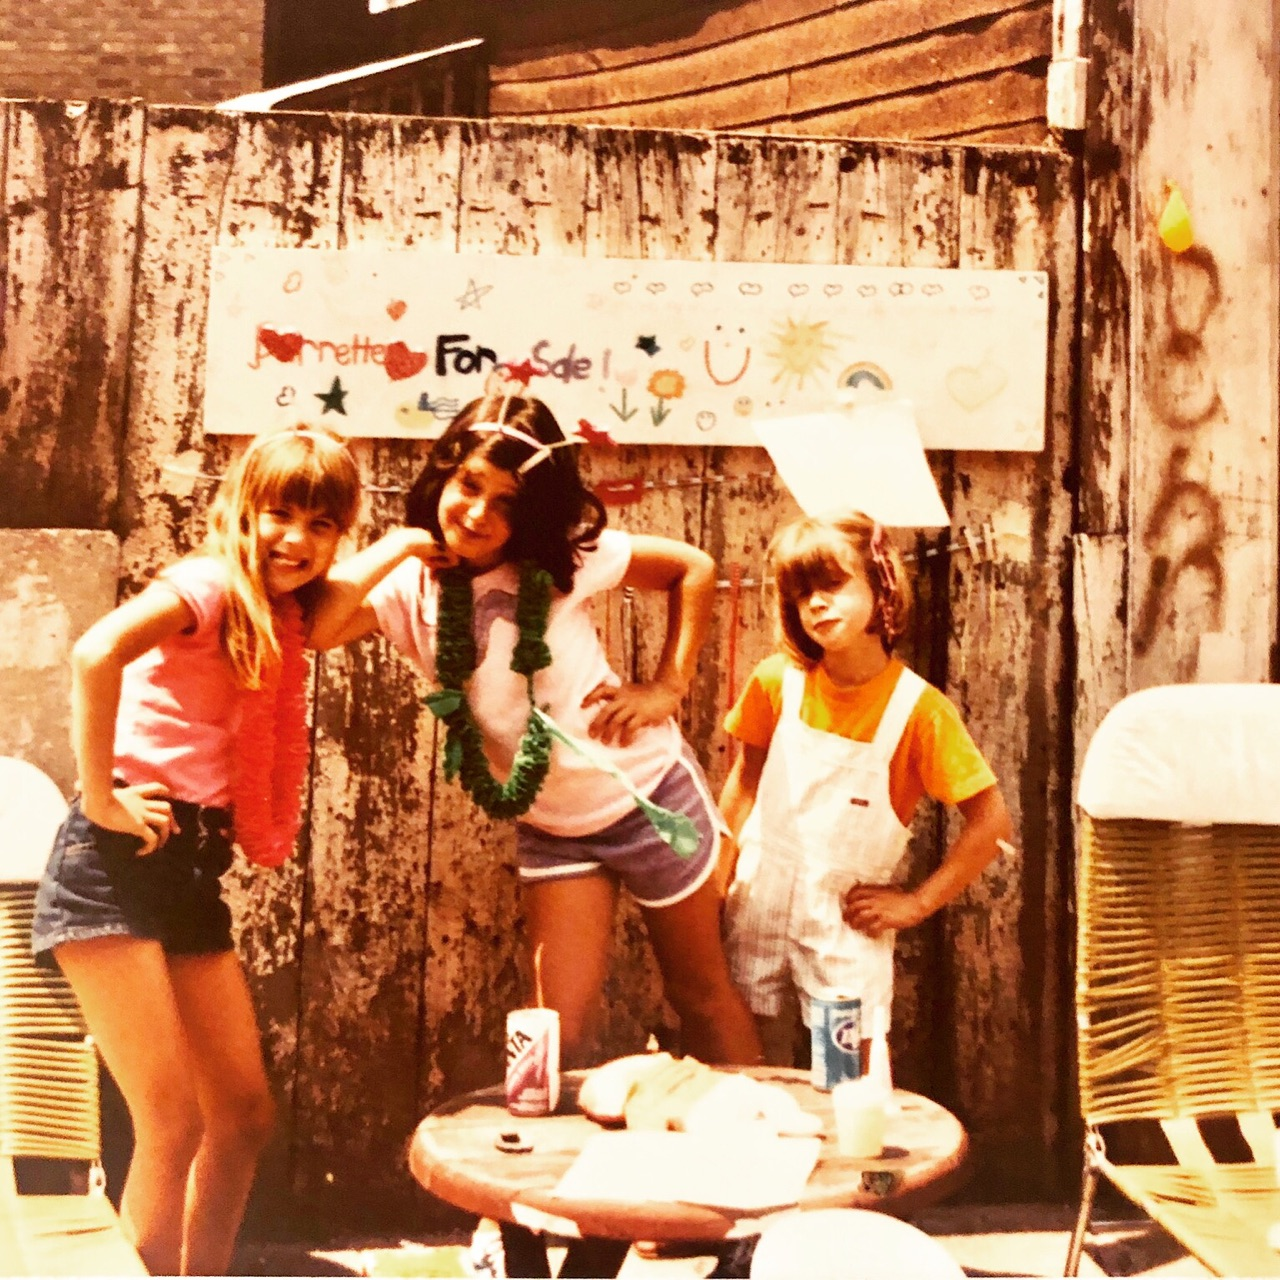 The owner, Larisa, hustling her wares (barrettes actually,) in a Dayton Street (Lincoln Park) garage sale in the DePaul area, 1981. All the women in this picture have become entrepreneurs.